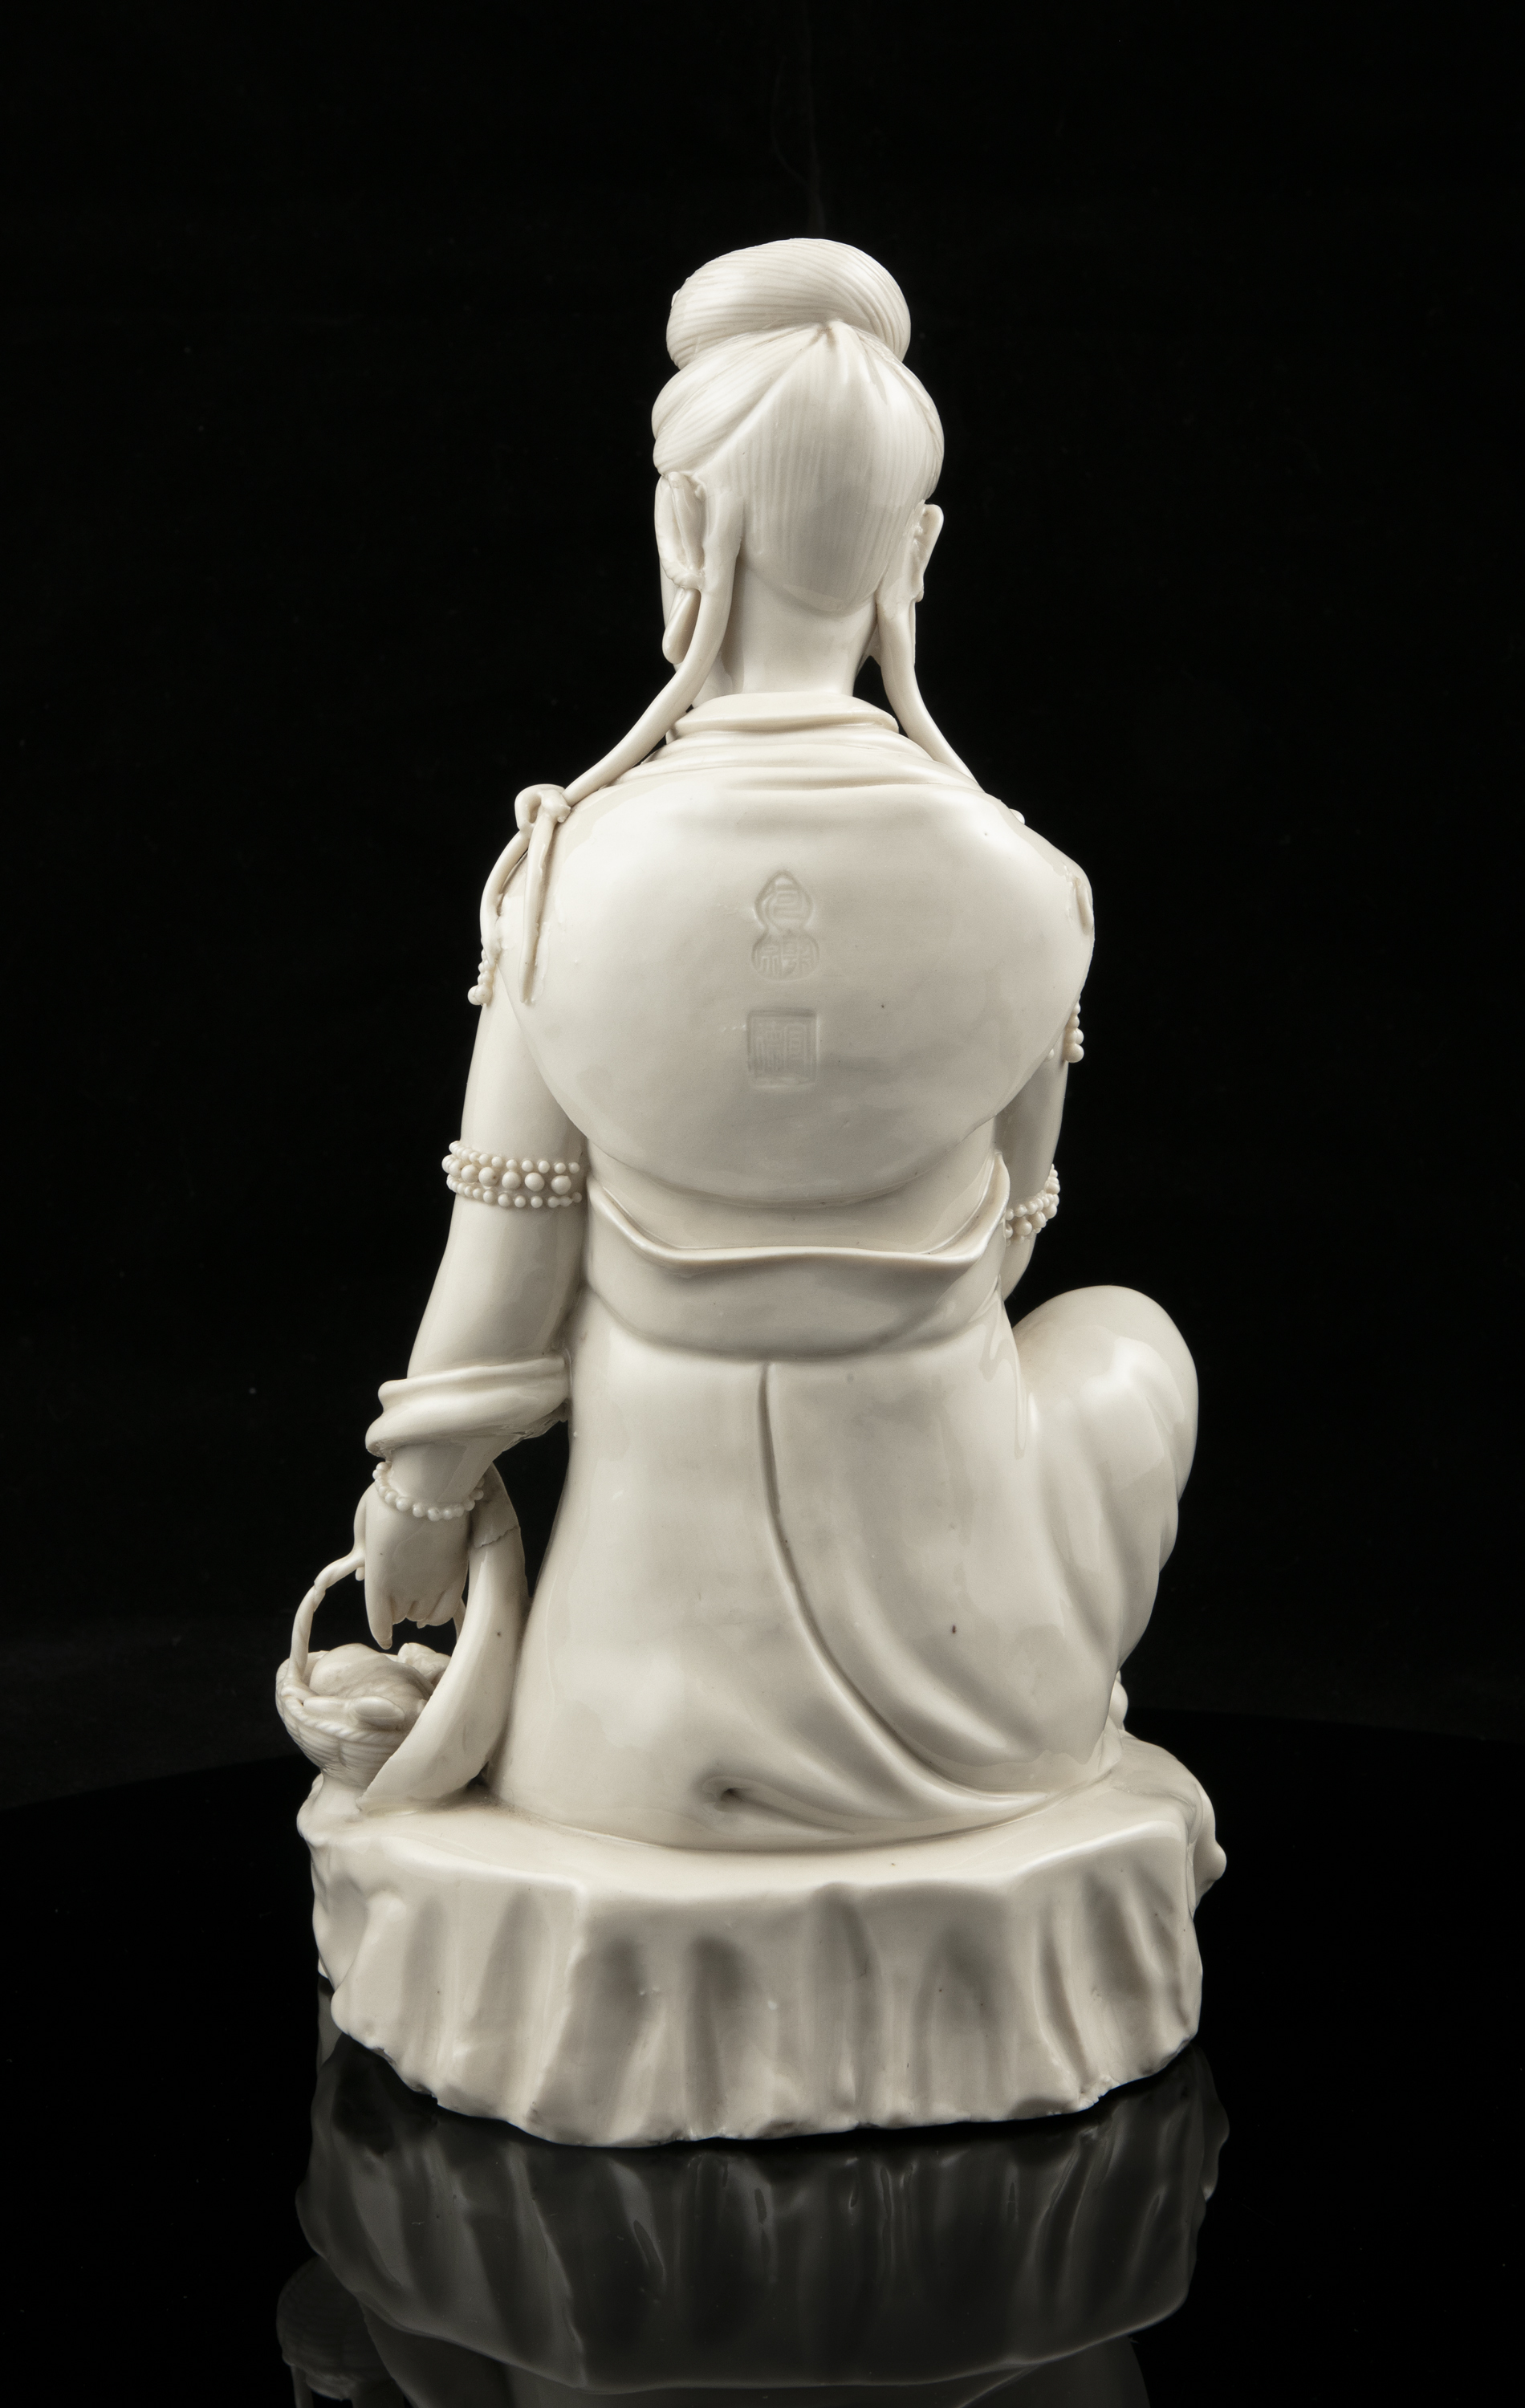 A LARGE DEHUA FIGURE OF A SEATED GUANYIN IMPRESSED WITH A HE CHAOZONG 何朝宗 CALABASH SHAPED SEAL - Image 24 of 48